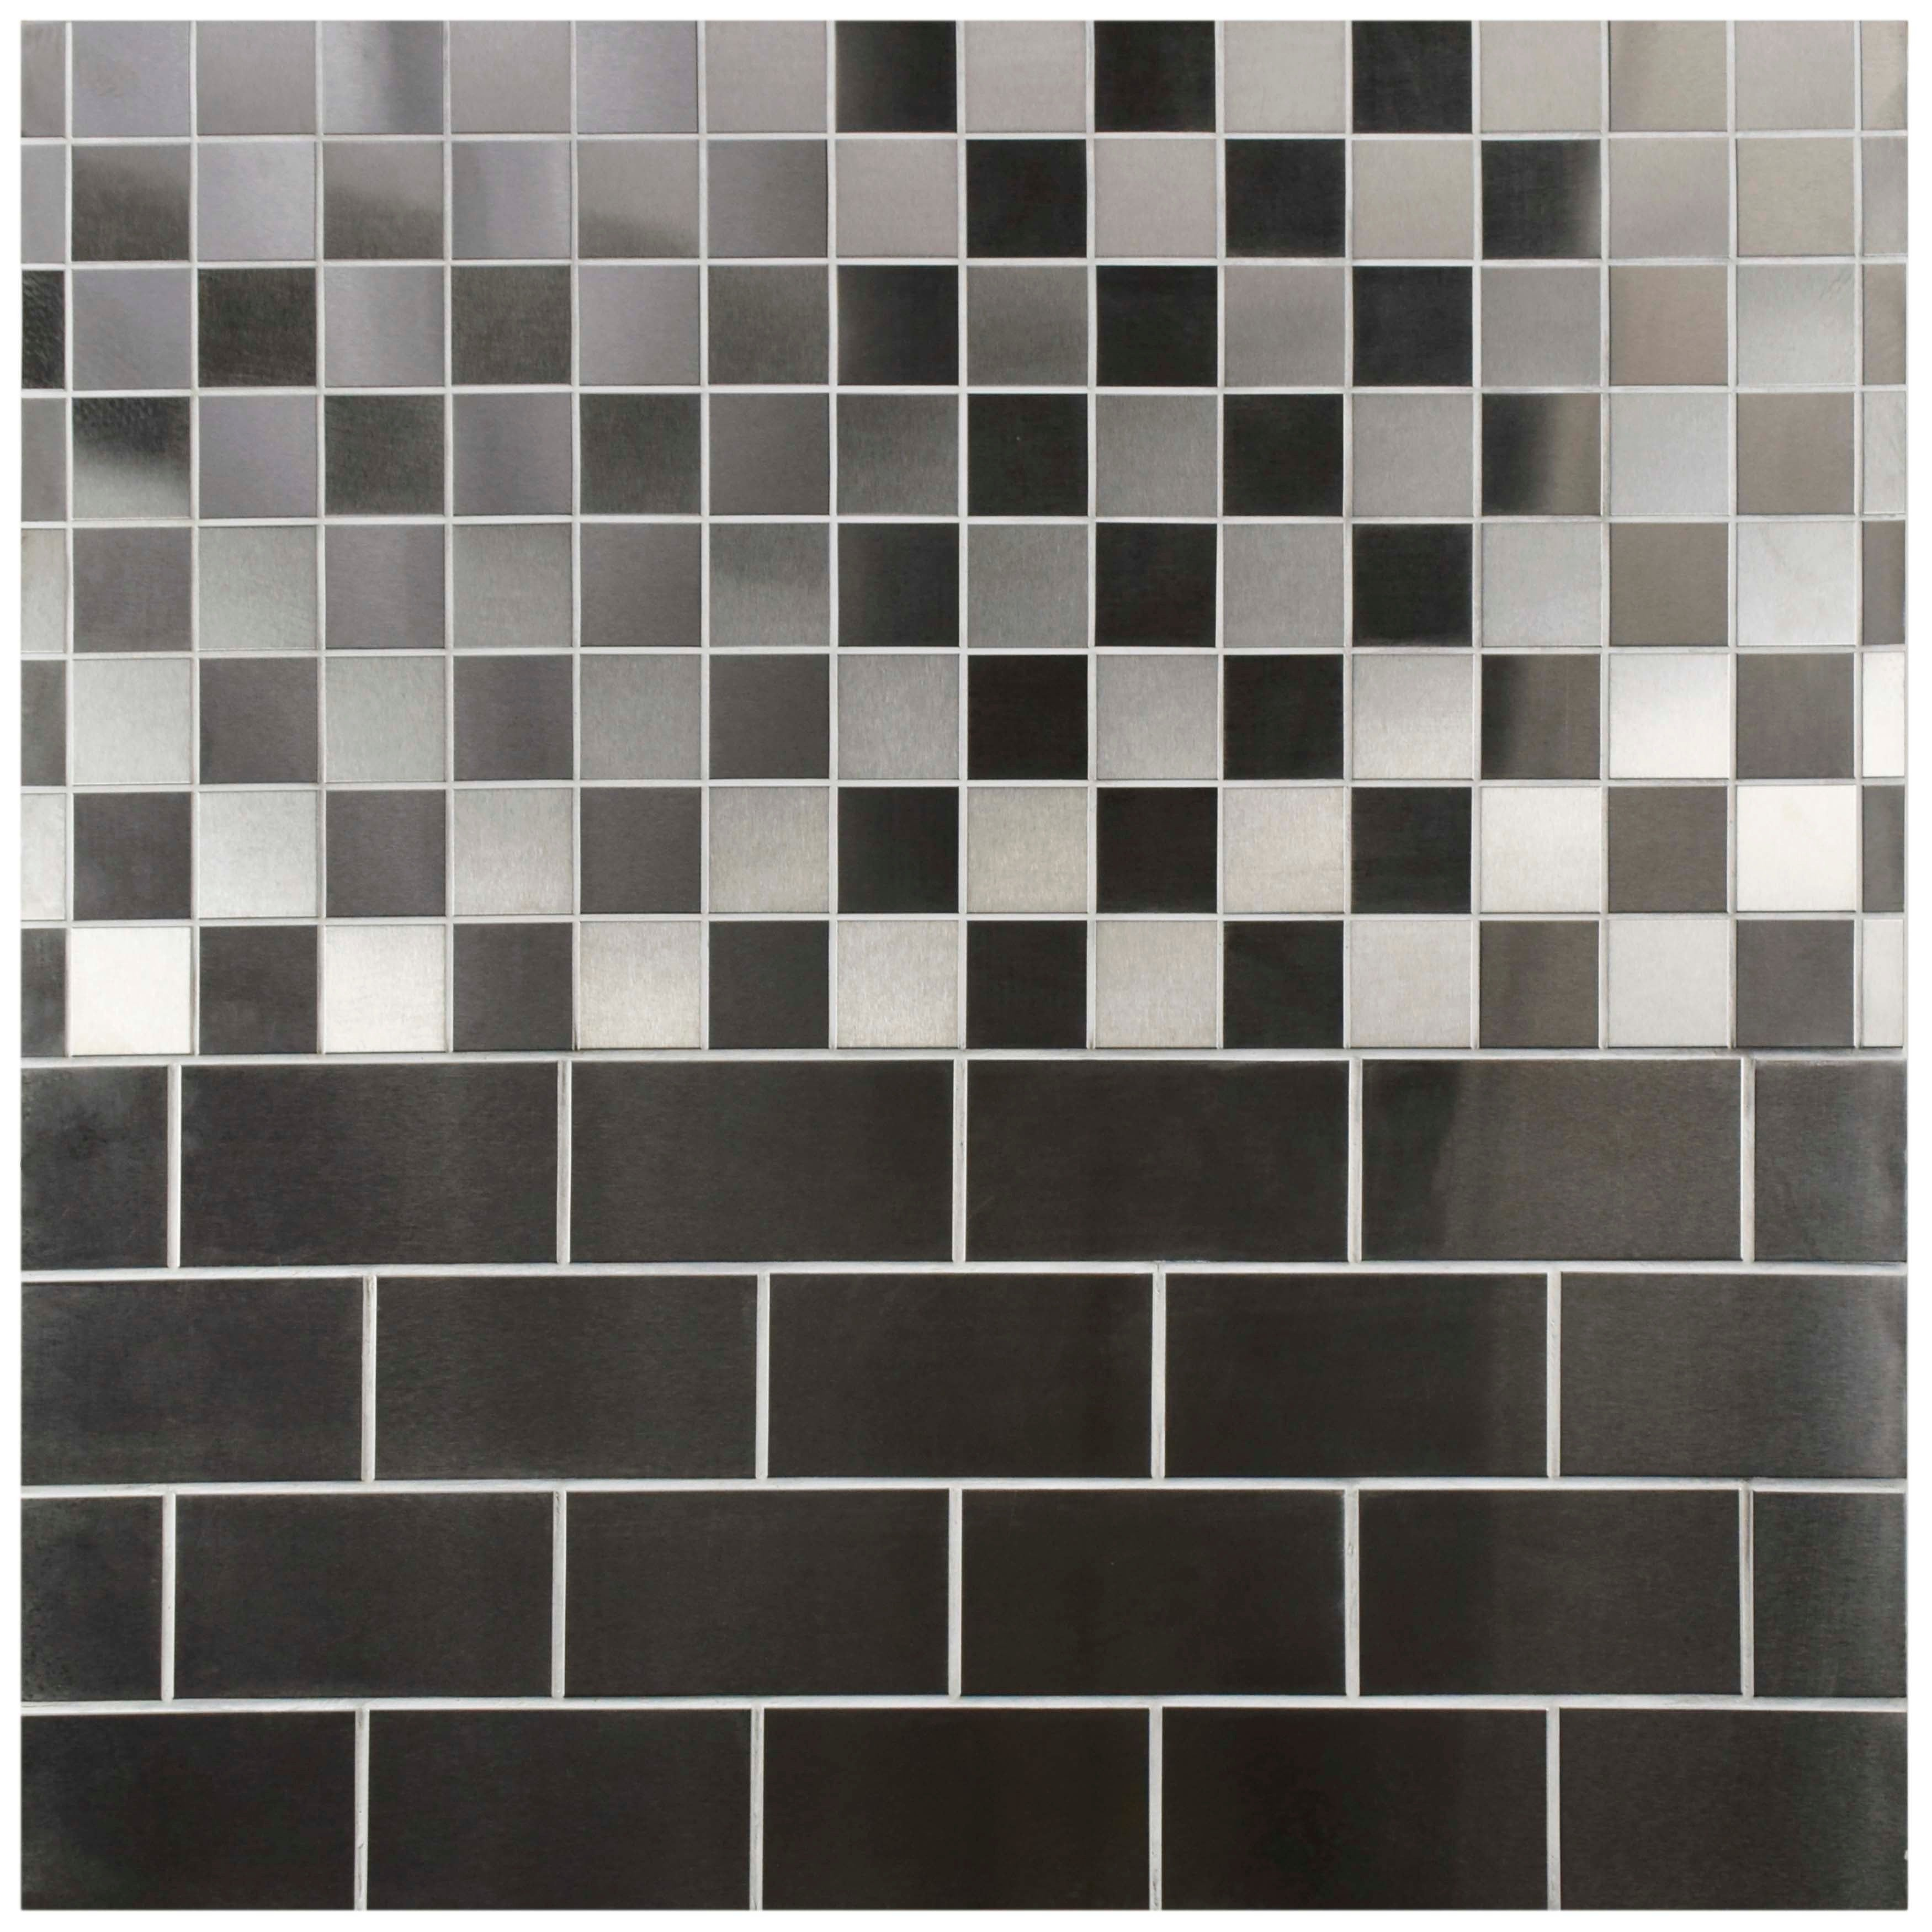 Somertile 3x6 Inch Alloy Subway Stainless Steel Over Porcelain Mosaic Wall Tile 64 Tiles 8 Sqft Free Shipping Today 5144425